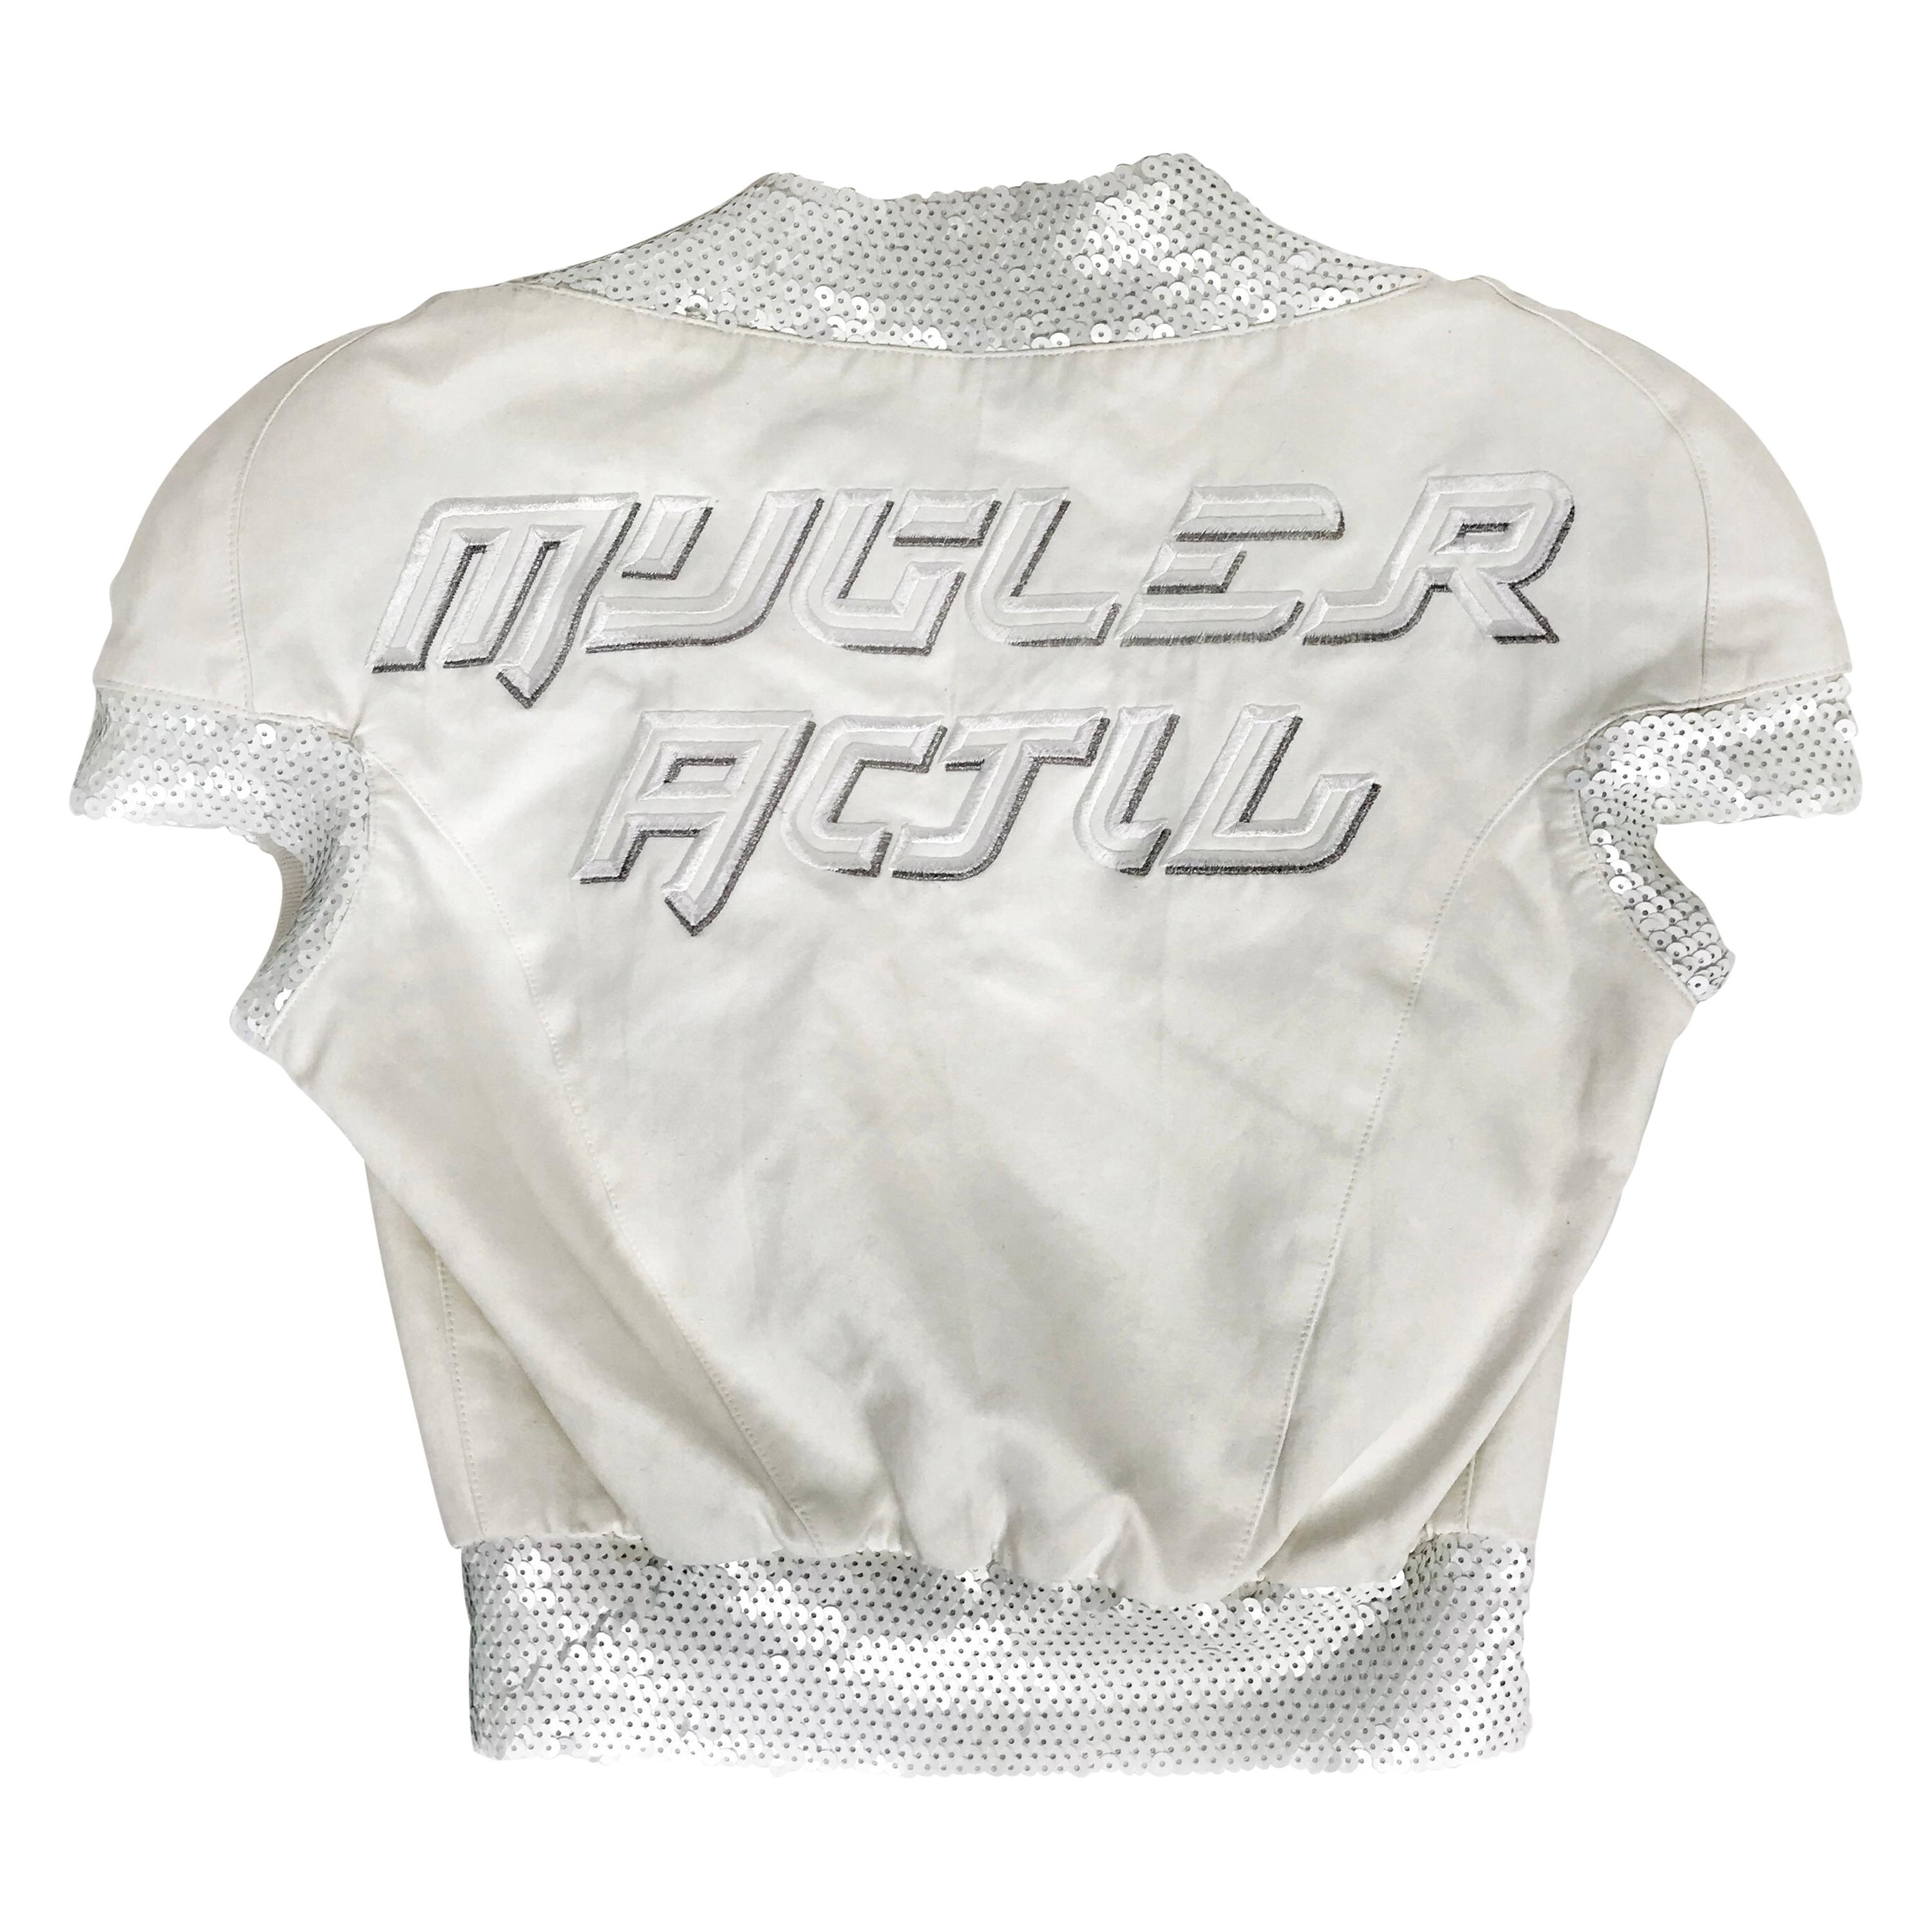 1990's Thierry Mugler Activ top Space Age Sequins Small